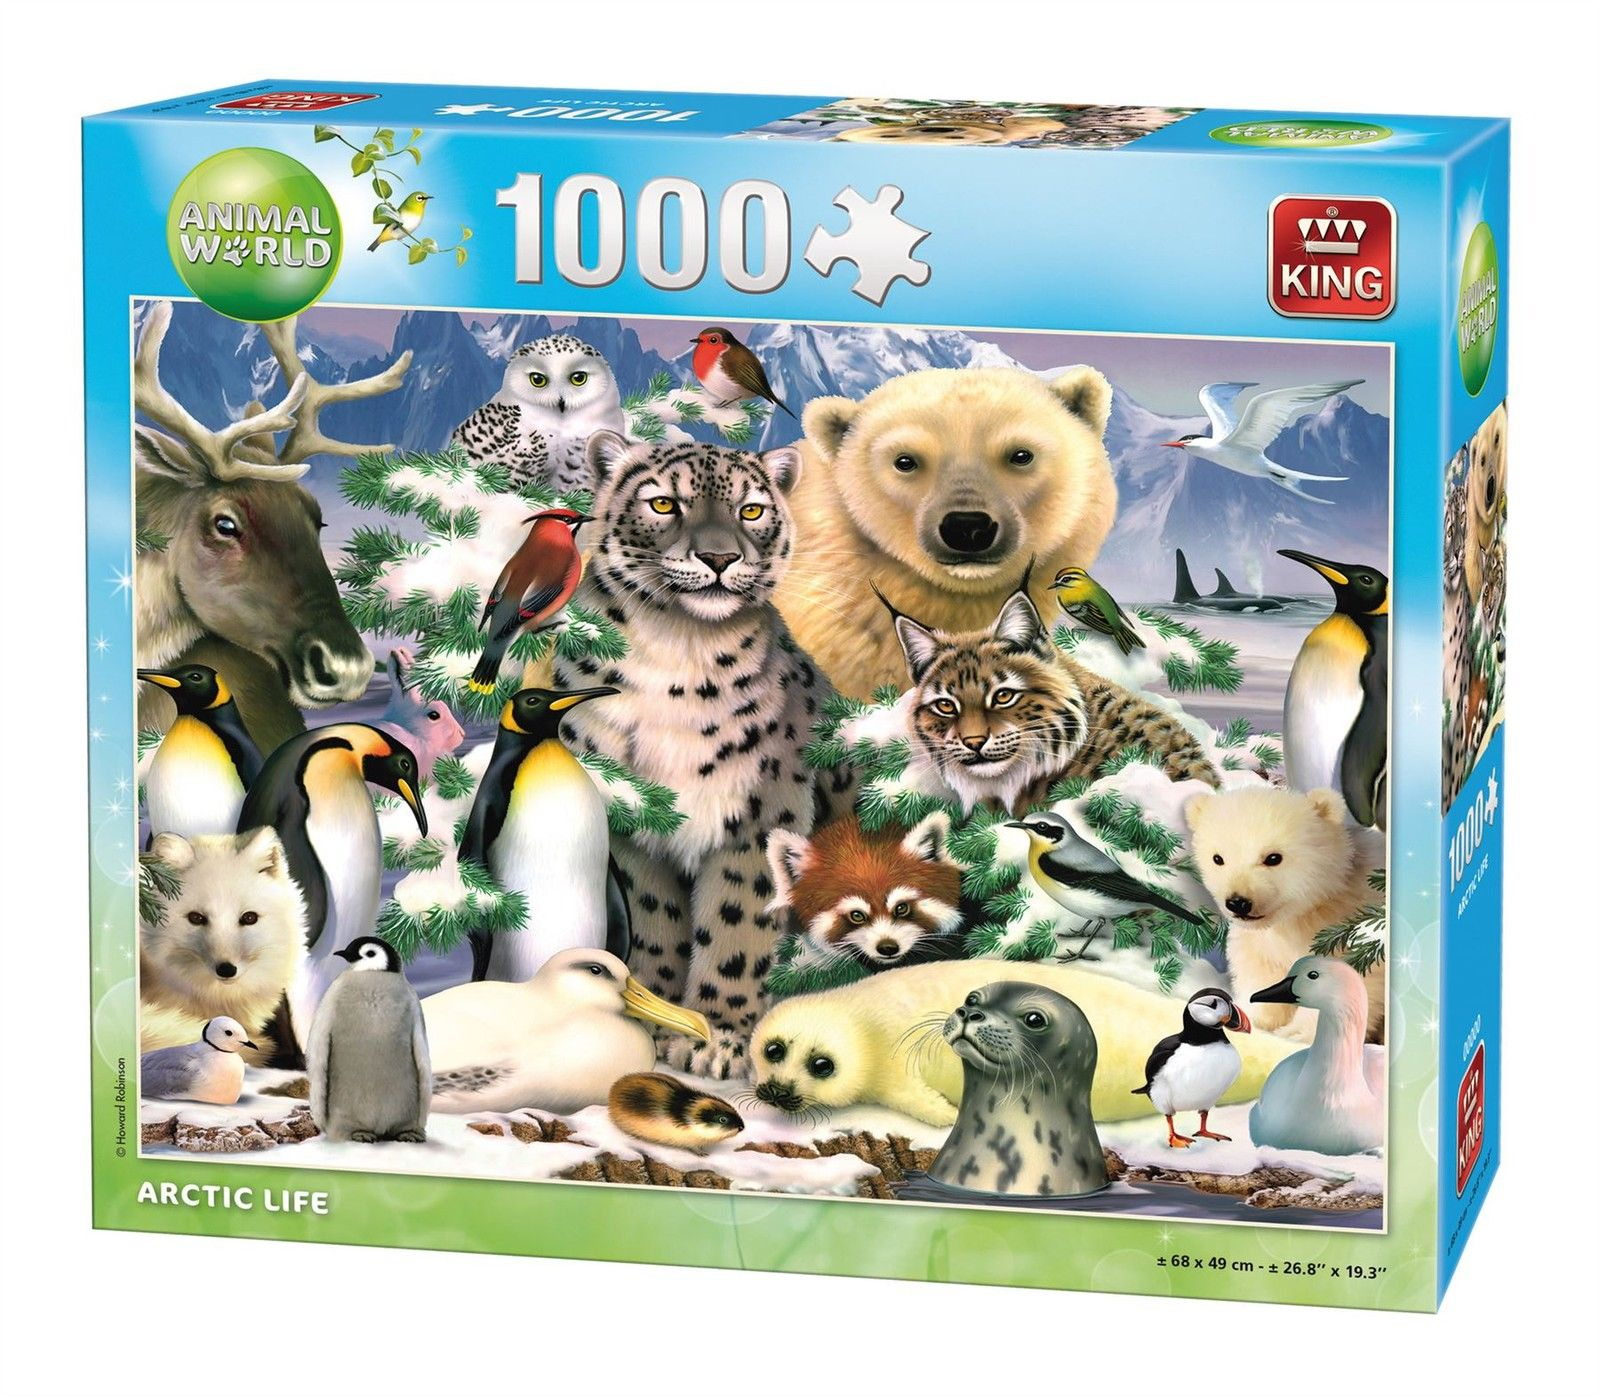 Puzzle Artic Life King Puzzle Pieces Jigsaw